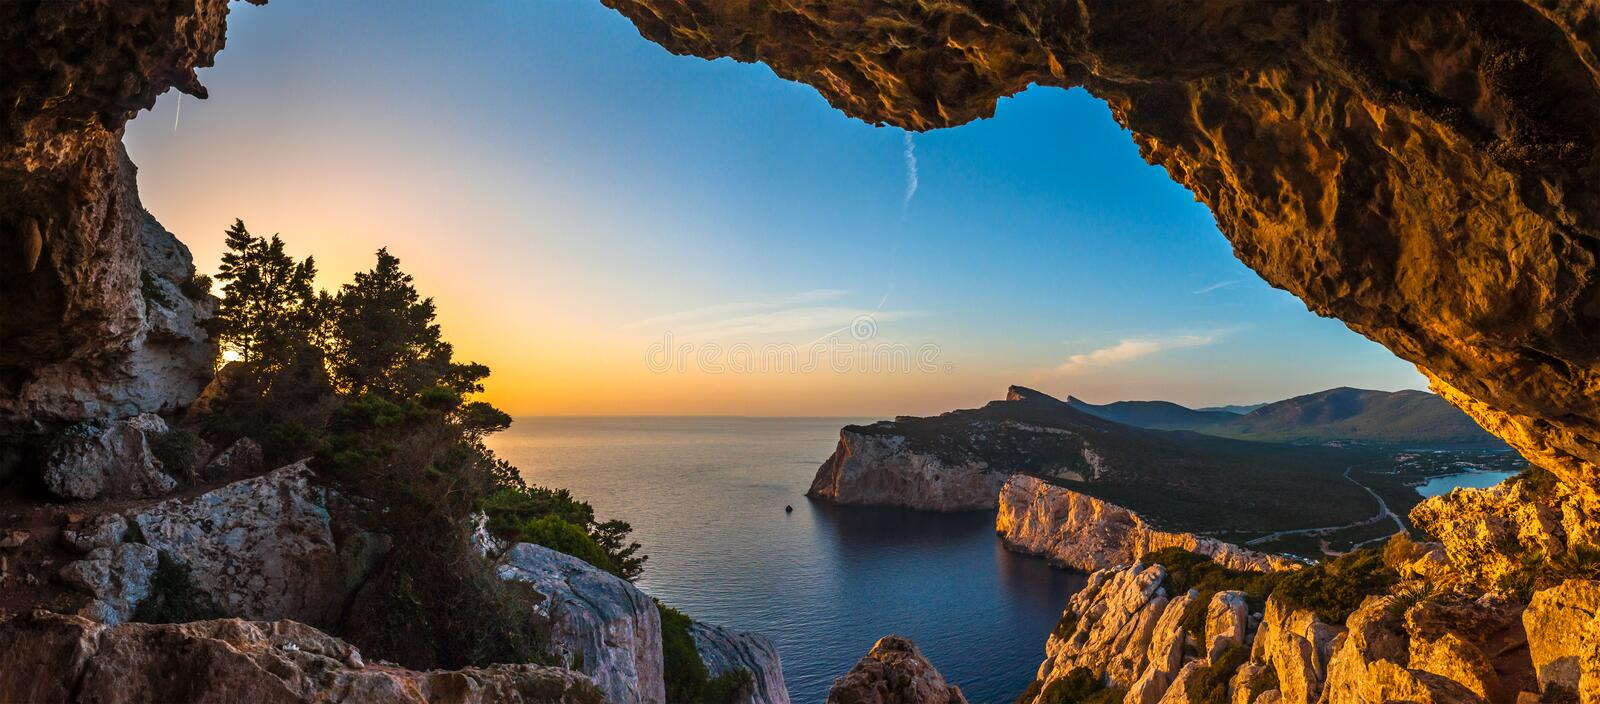 Landscape of the gulf of capo caccia. From the Cave of broken vessels at sunset, alghero, adventure, beach, blue, capocaccia, coast, coastline, grotta, dei stock image